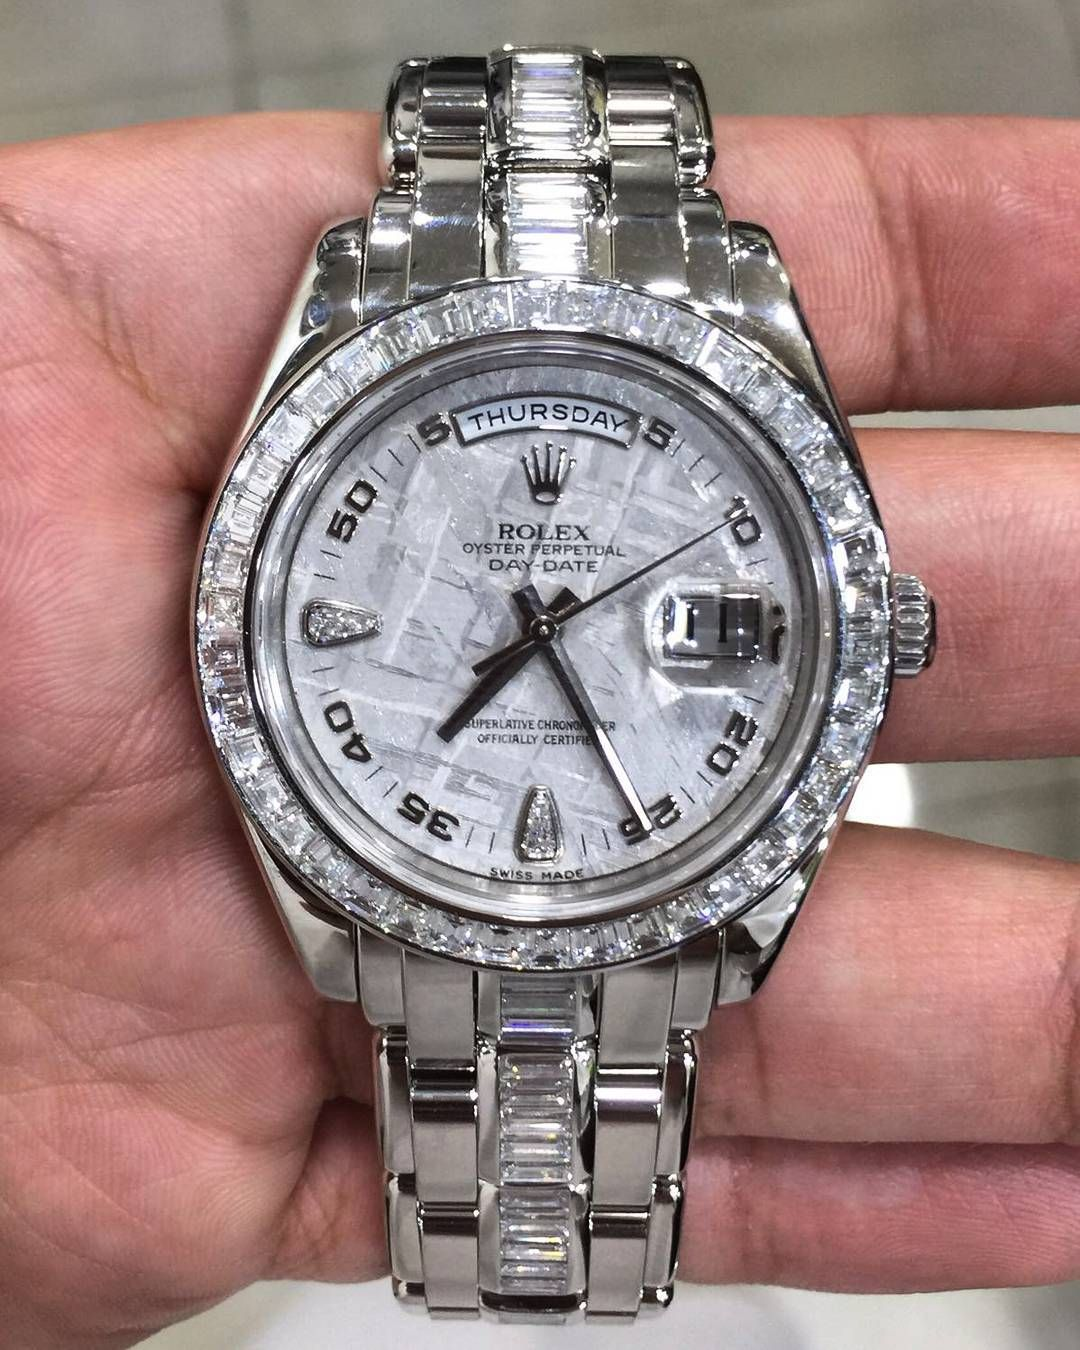 Edition Platinum: FS: Rolex Day-Date Pearlmaster Masterpiece Special Edition